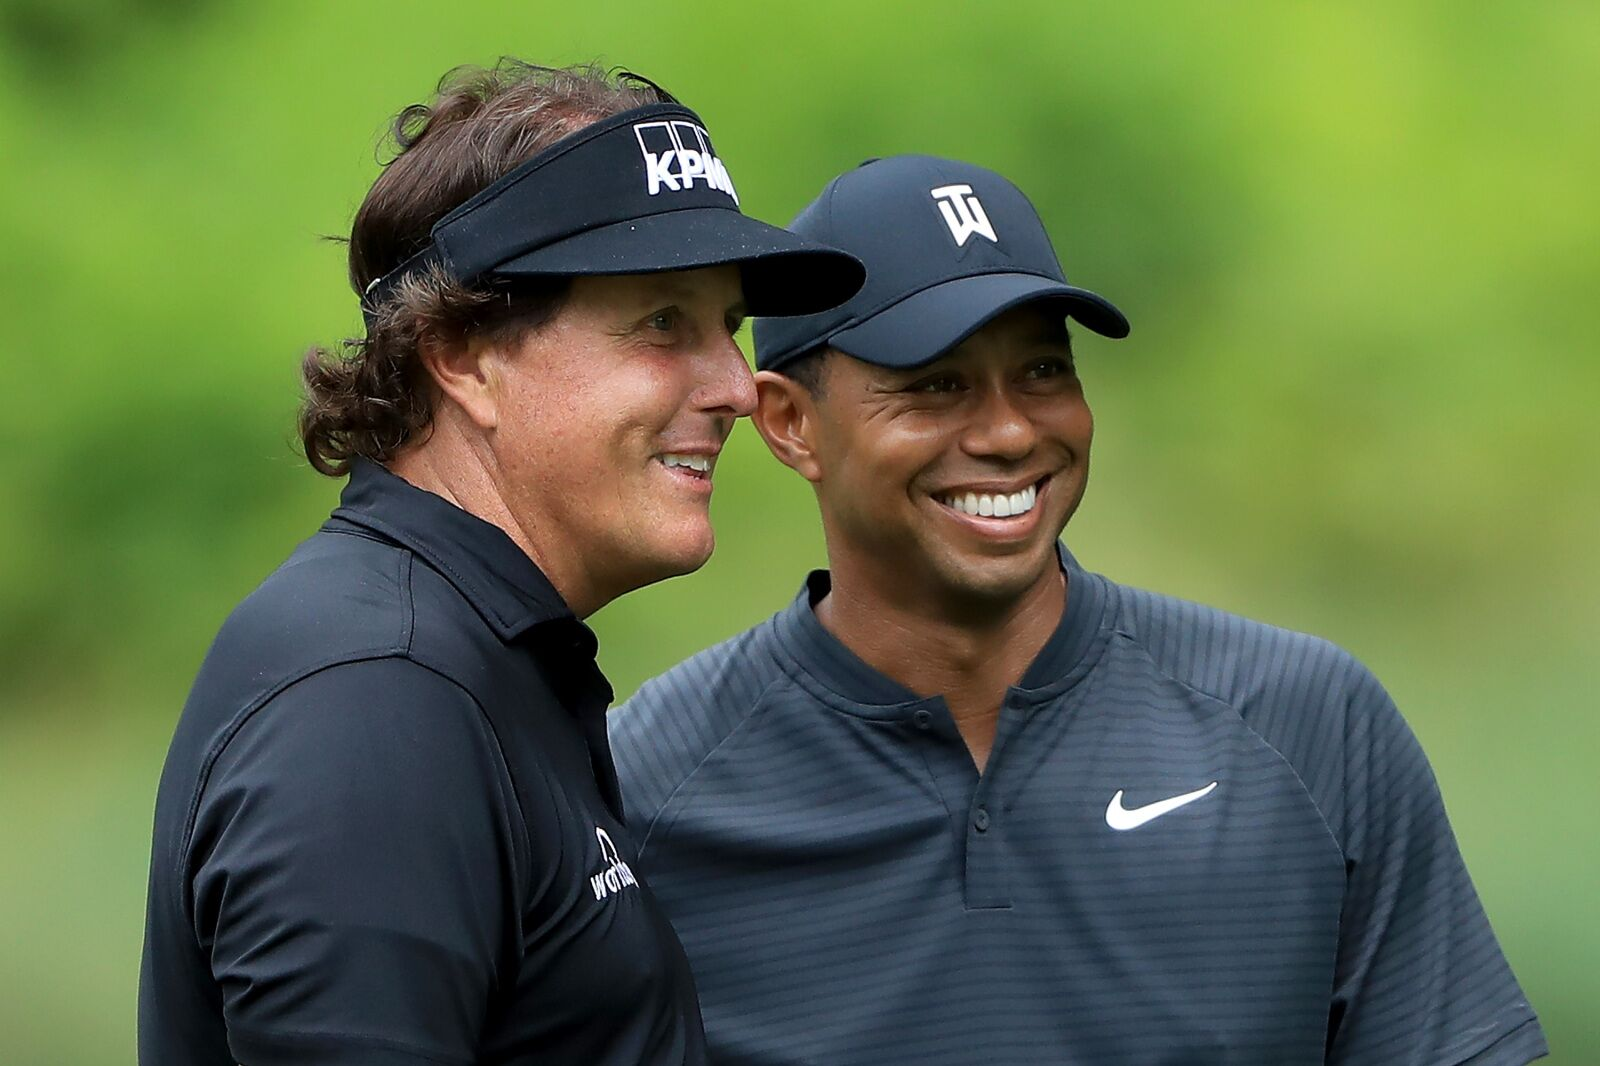 Thanksgiving match between Tiger Woods and Phil Mickelson official